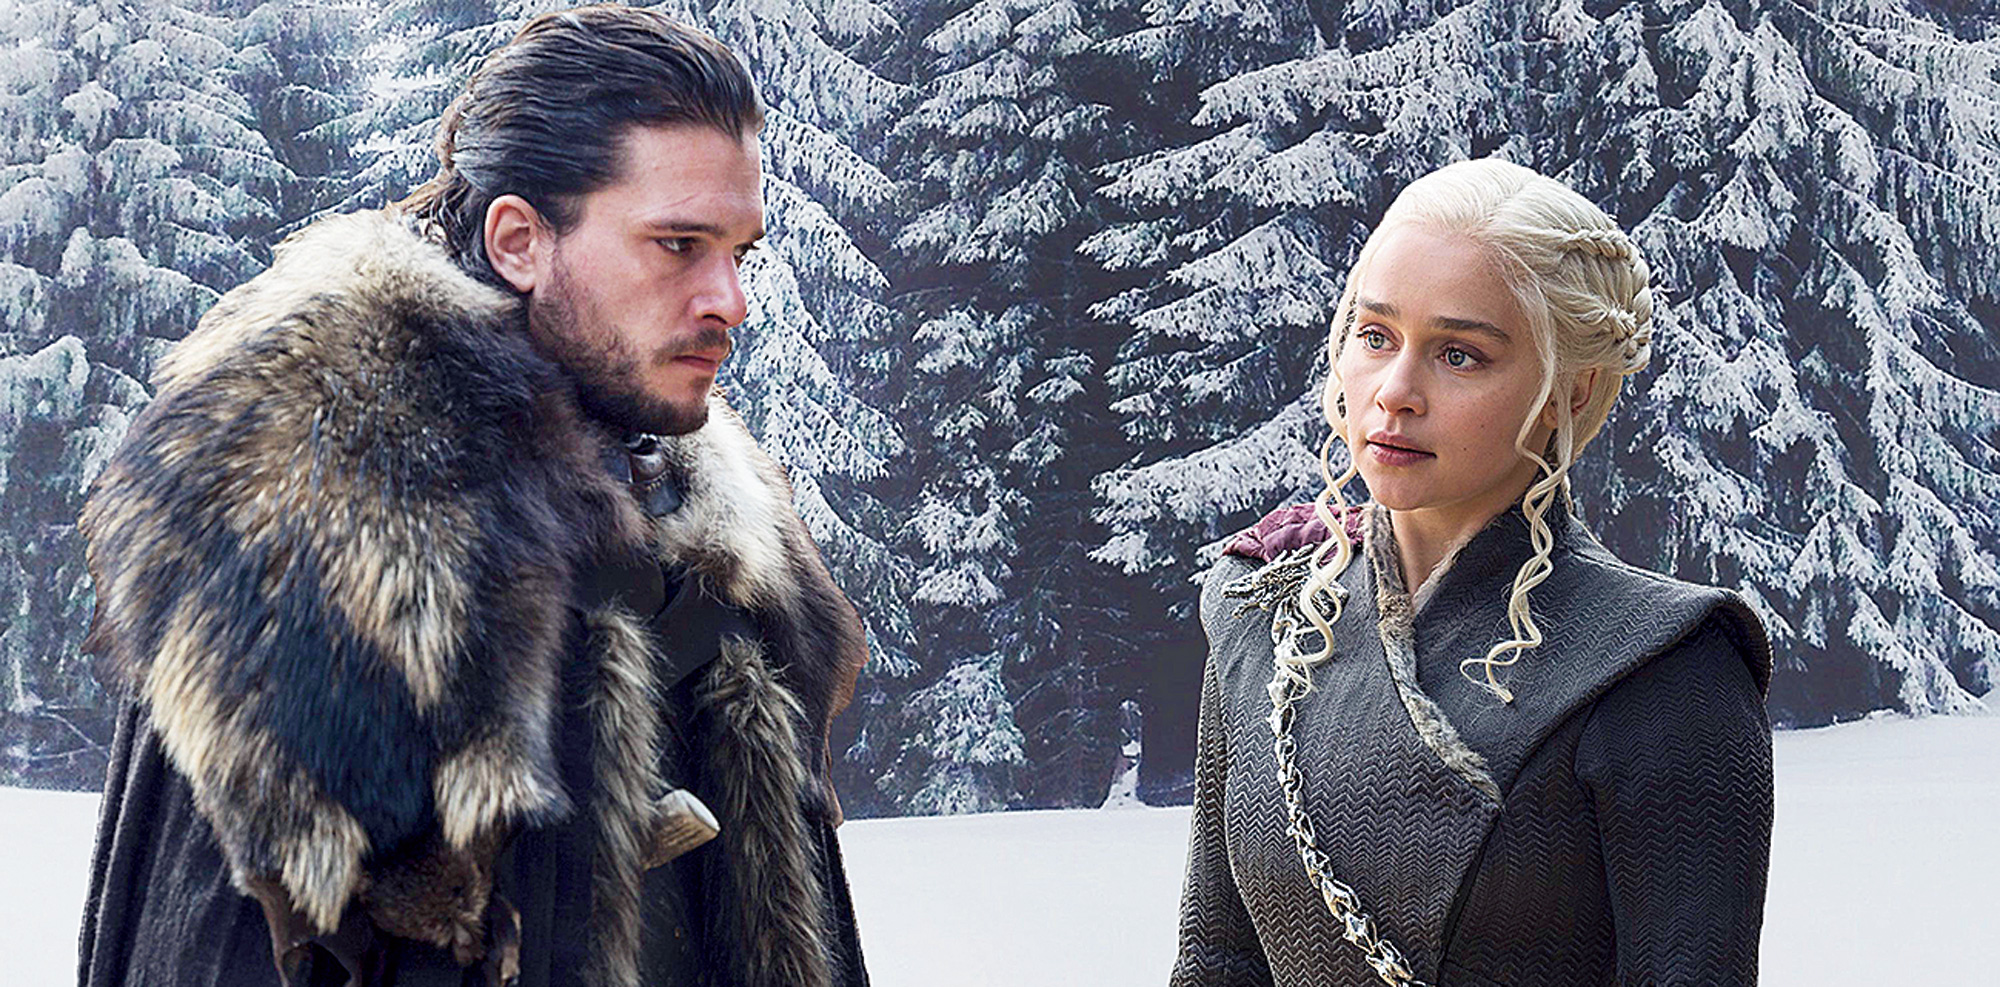 As the final season plays out, will Game of Thrones ever really be over?